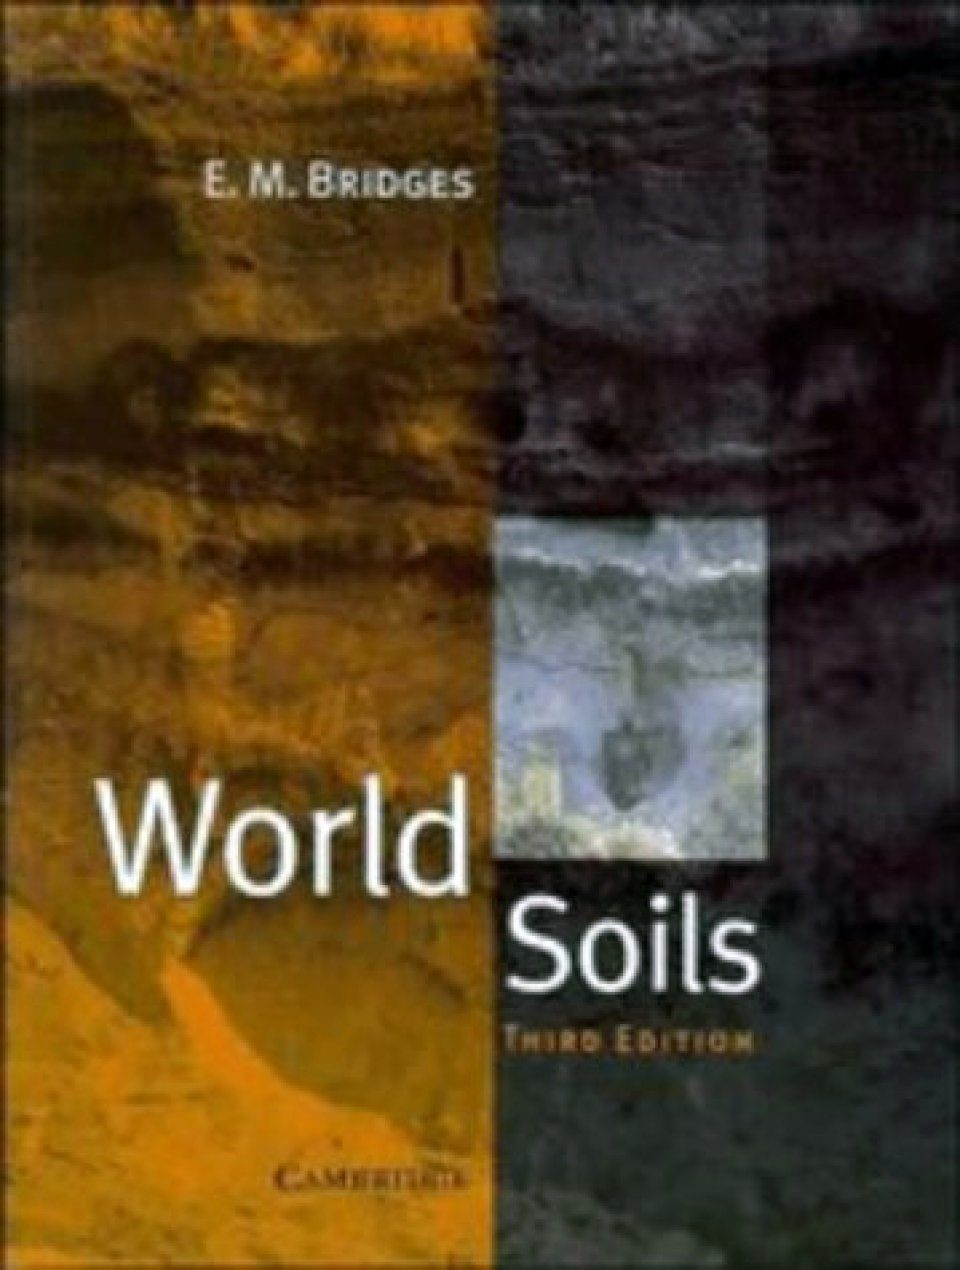 World Soils